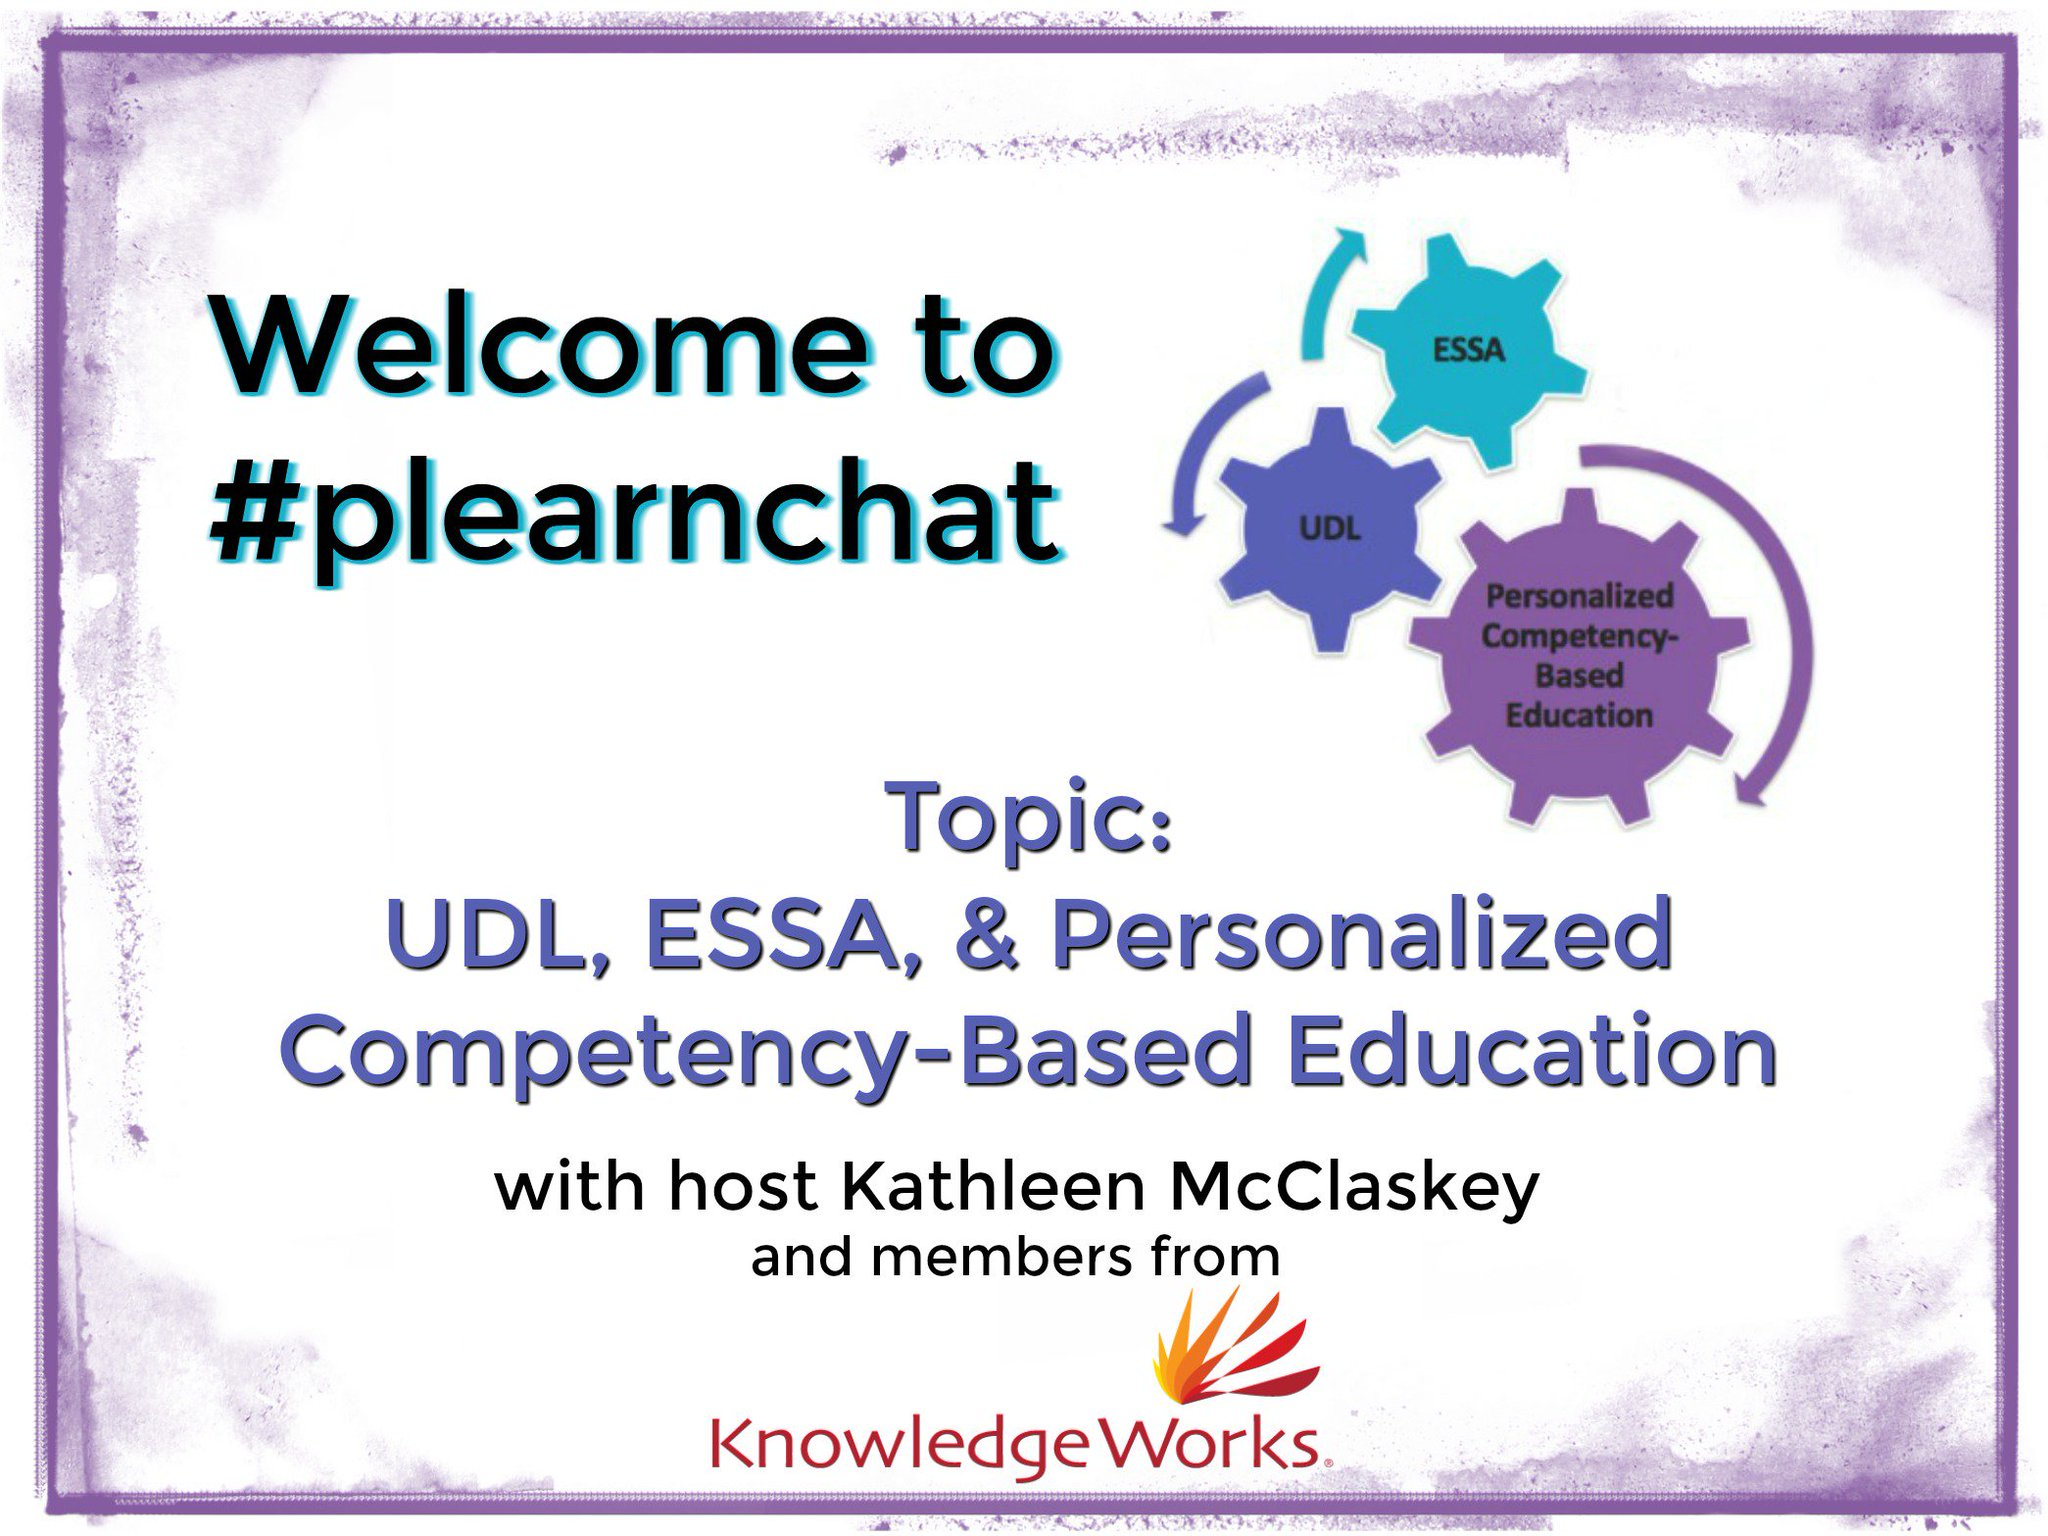 Welcome to #plearnchat with host @khmmc & the @knowledgeworks team! Please introduce yourself & location. 1 participant will win How to PL! https://t.co/YyalyGpOh1